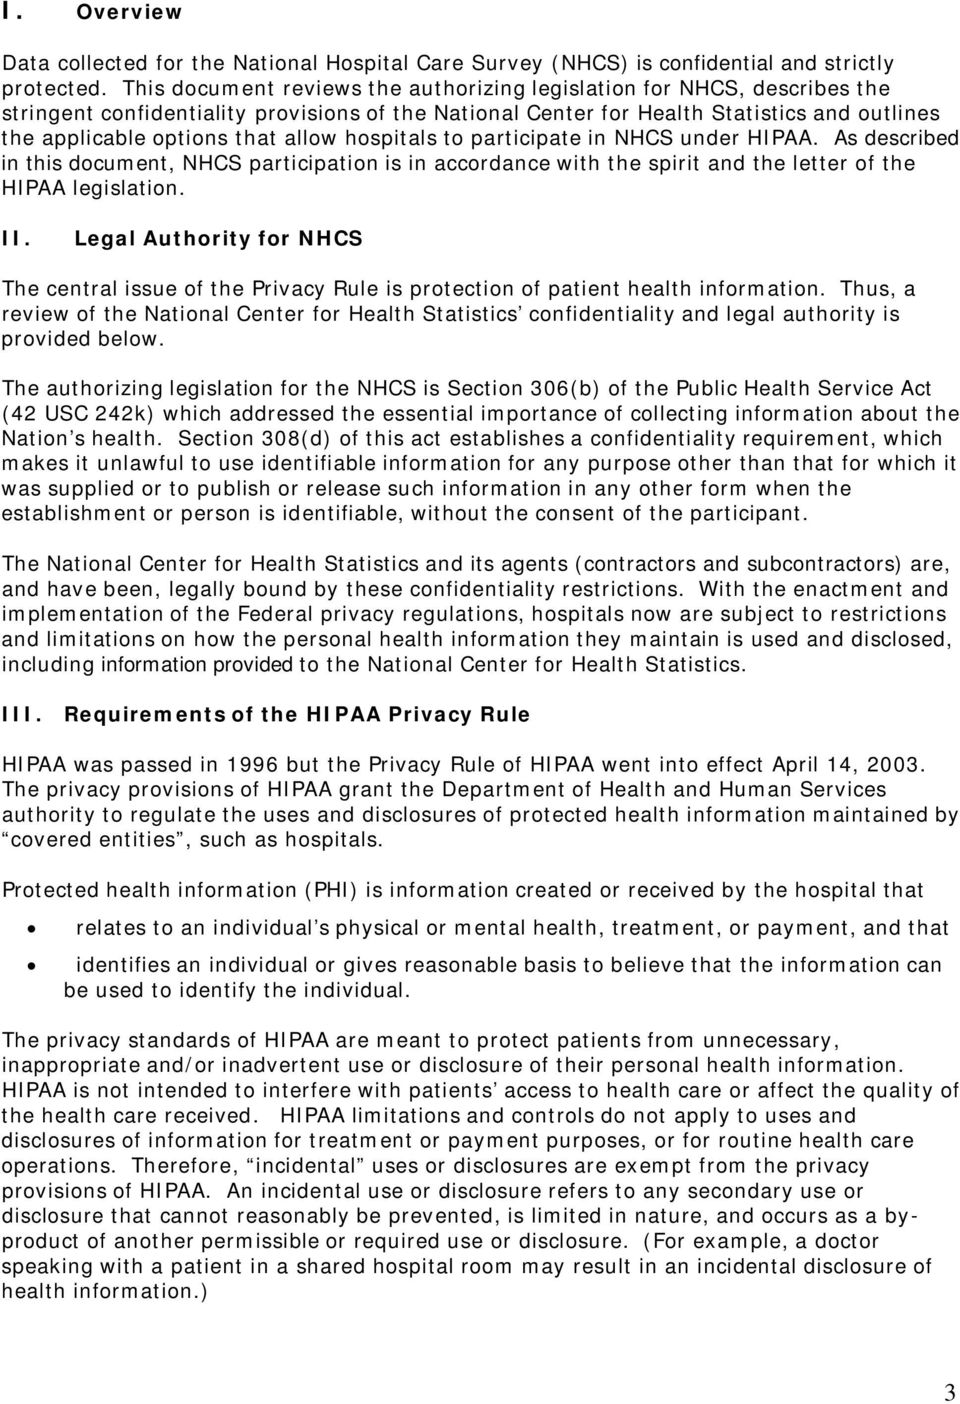 allow hospitals to participate in NHCS under HIPAA. As described in this document, NHCS participation is in accordance with the spirit and the letter of the HIPAA legislation. II.